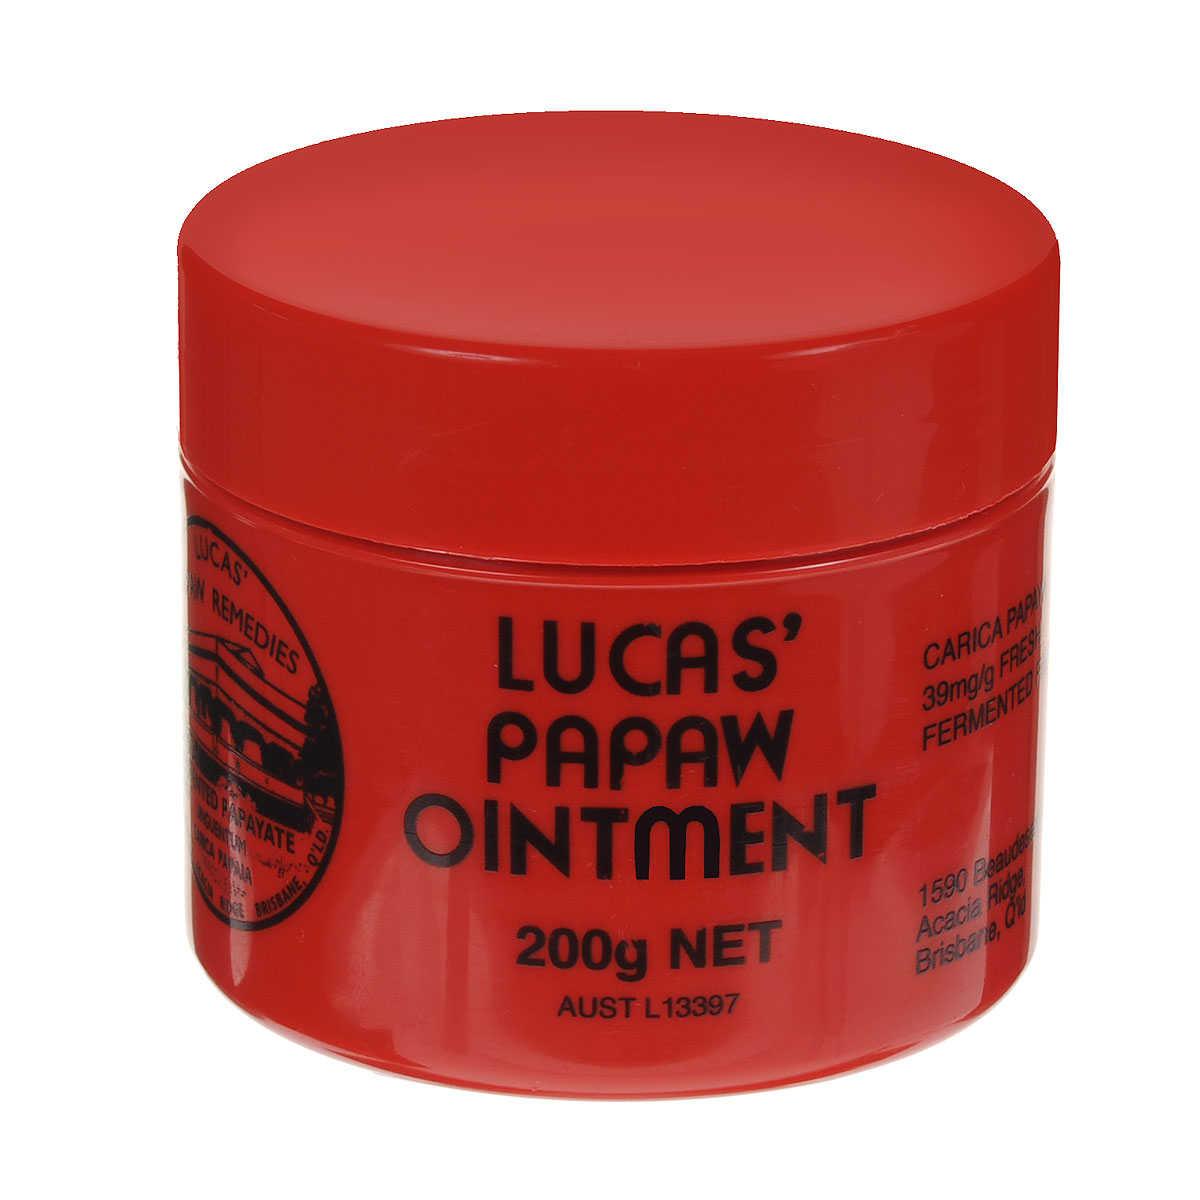 Lucas Papaw Бальзам для губ Ointment, 200 г sumifun 100% original 19 4g red white tiger balm ointment thailand painkiller ointment muscle pain relief ointment soothe itch